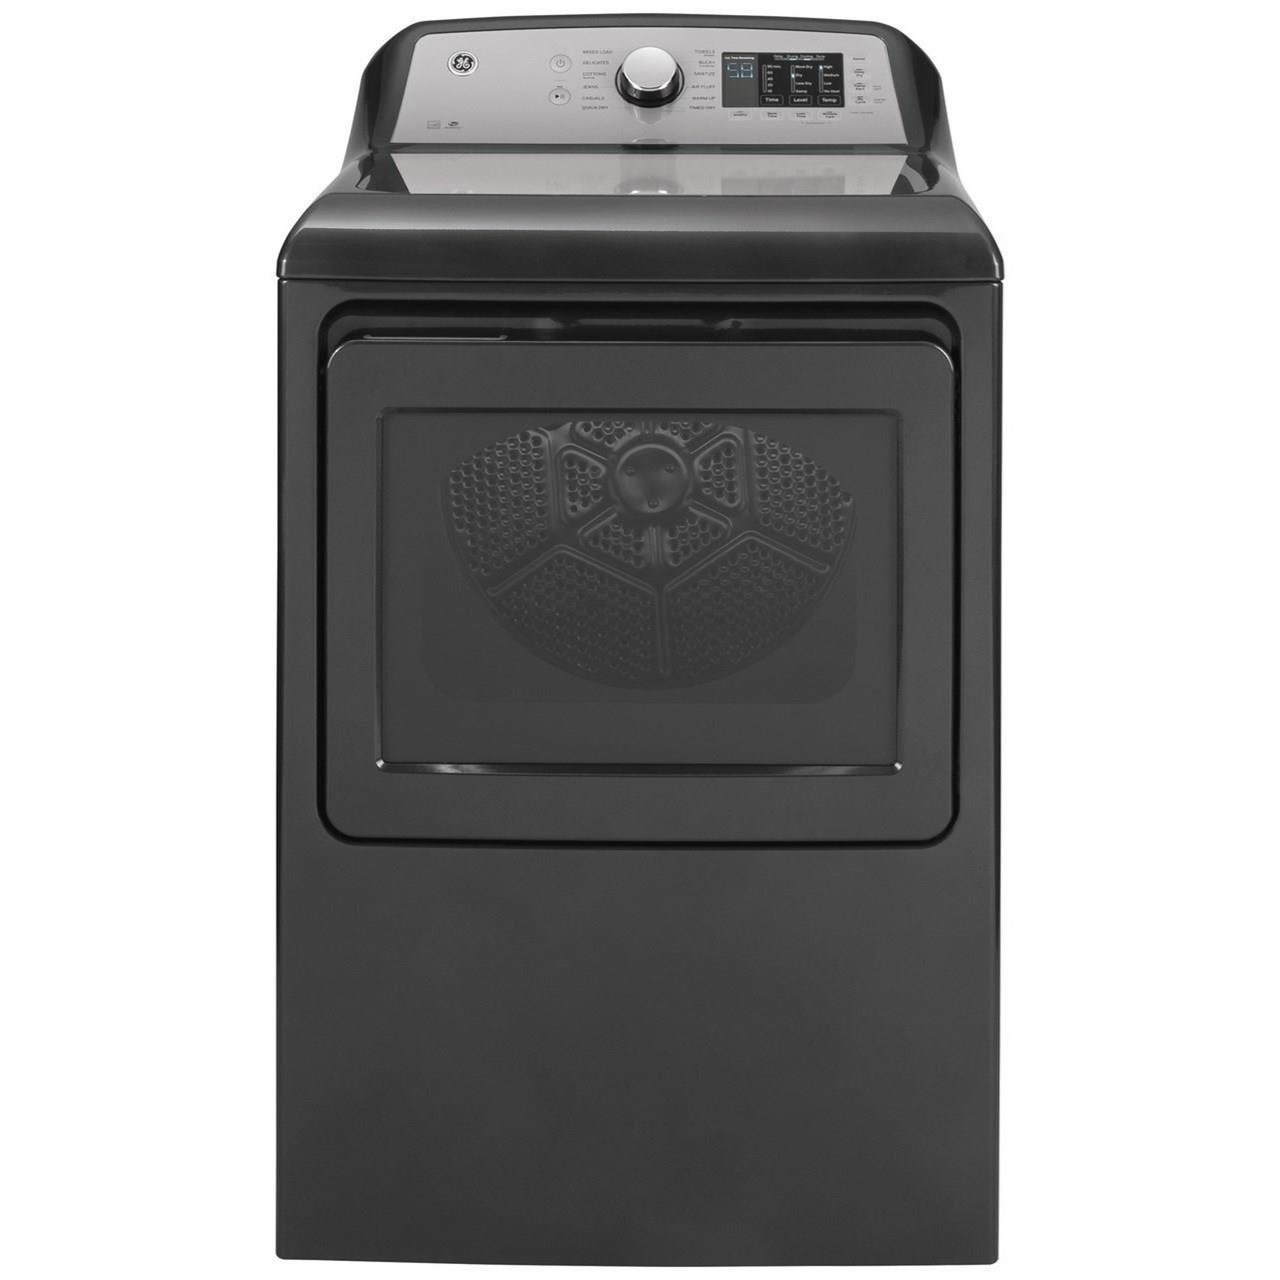 Home Laundry GE® 7.4 cu. ft. Capacity Gas Dryer by GE Appliances at Furniture and ApplianceMart